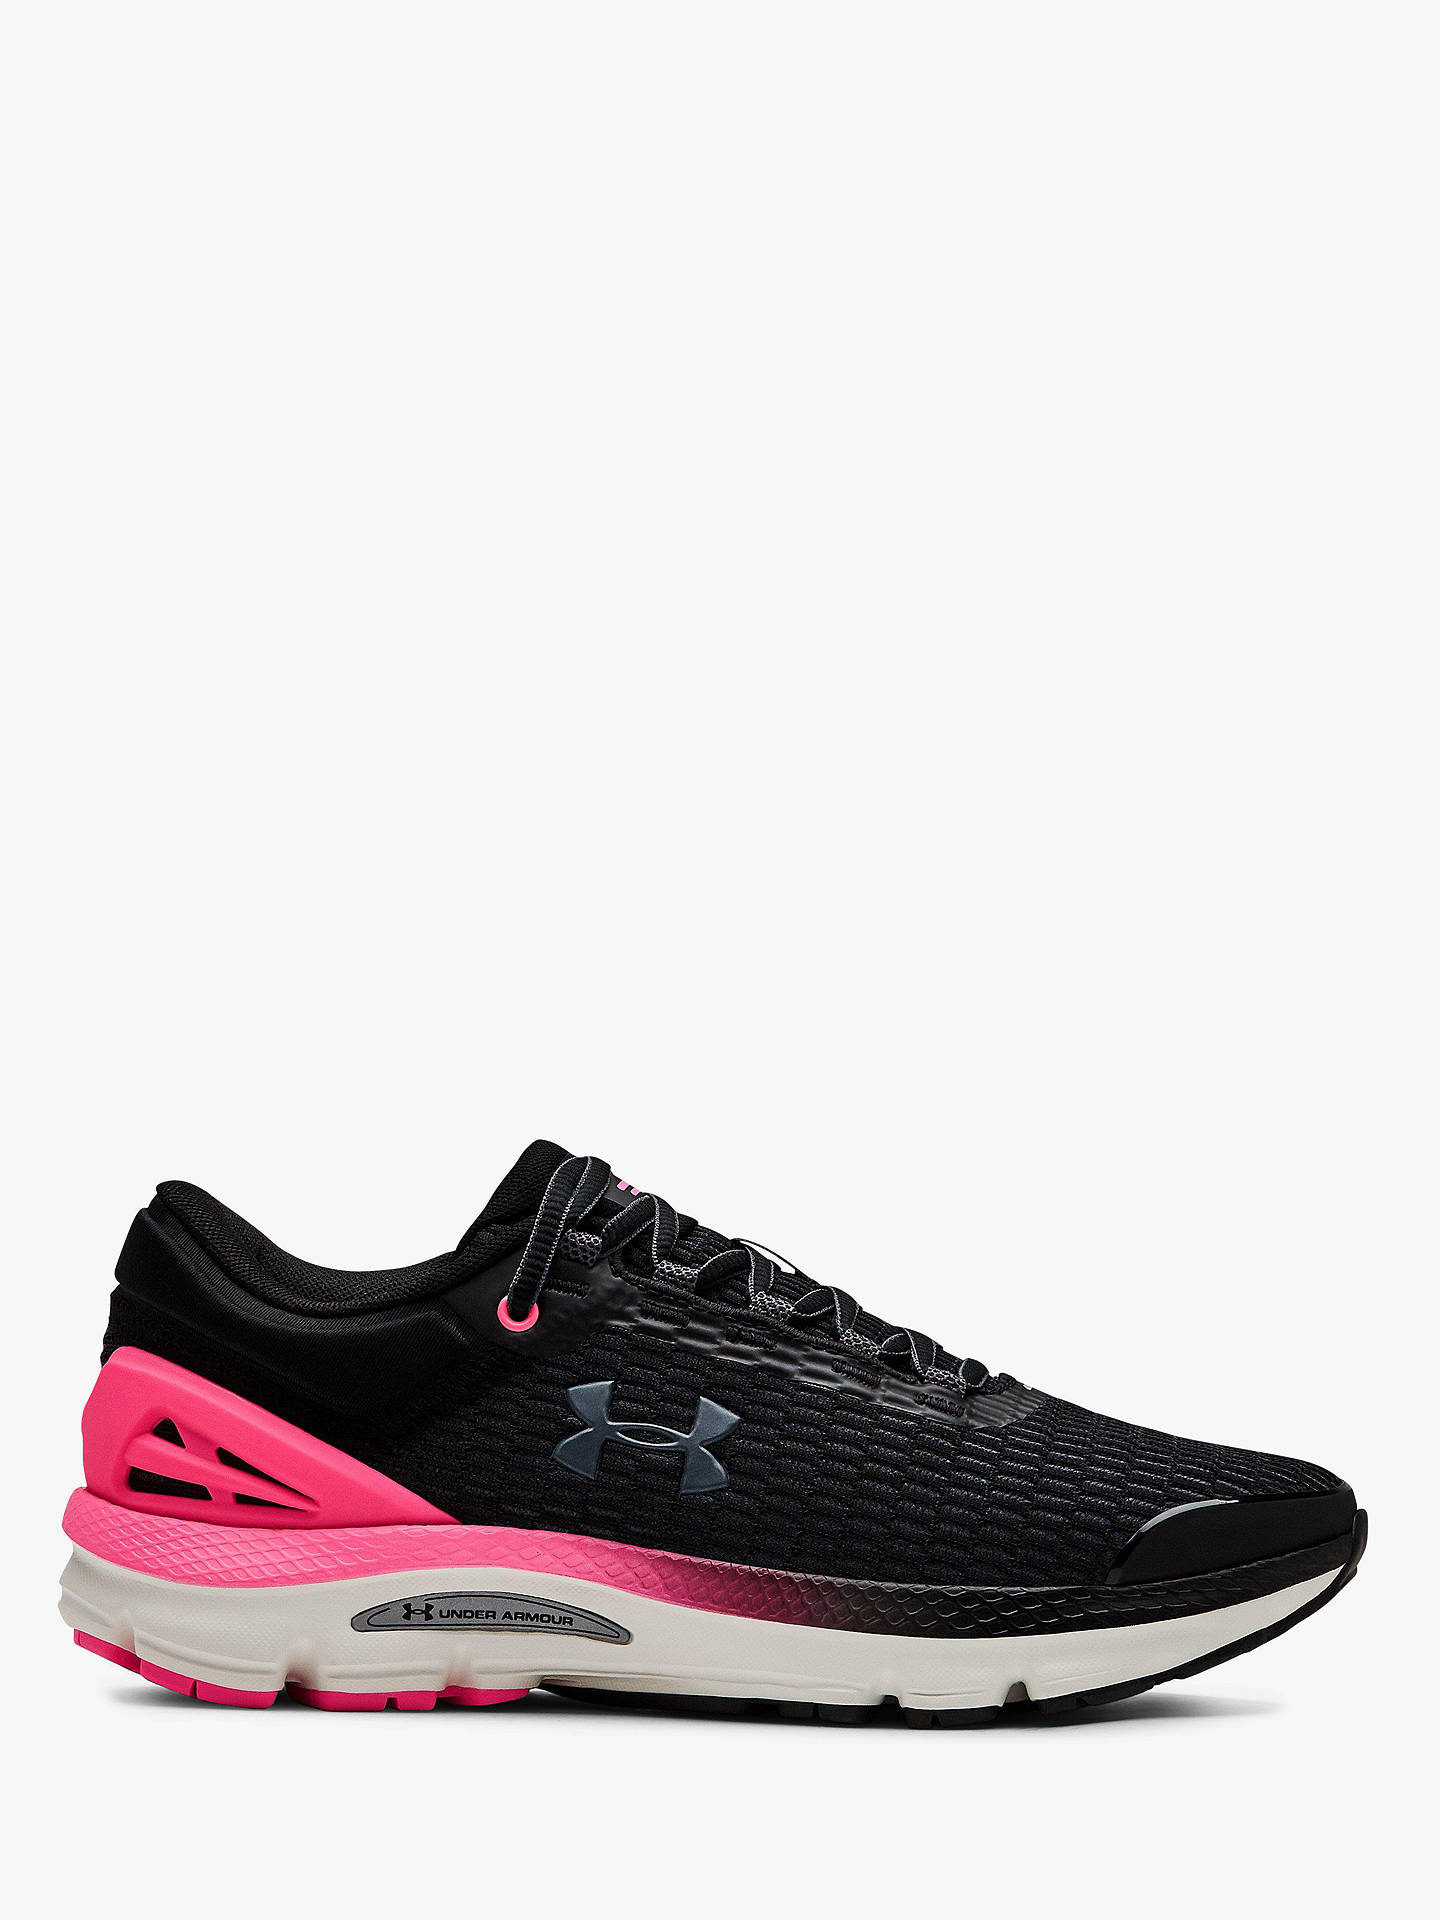 1f1c2b9175 Under Armour Charged Intake 3 Women's Running Shoes, Black at John ...